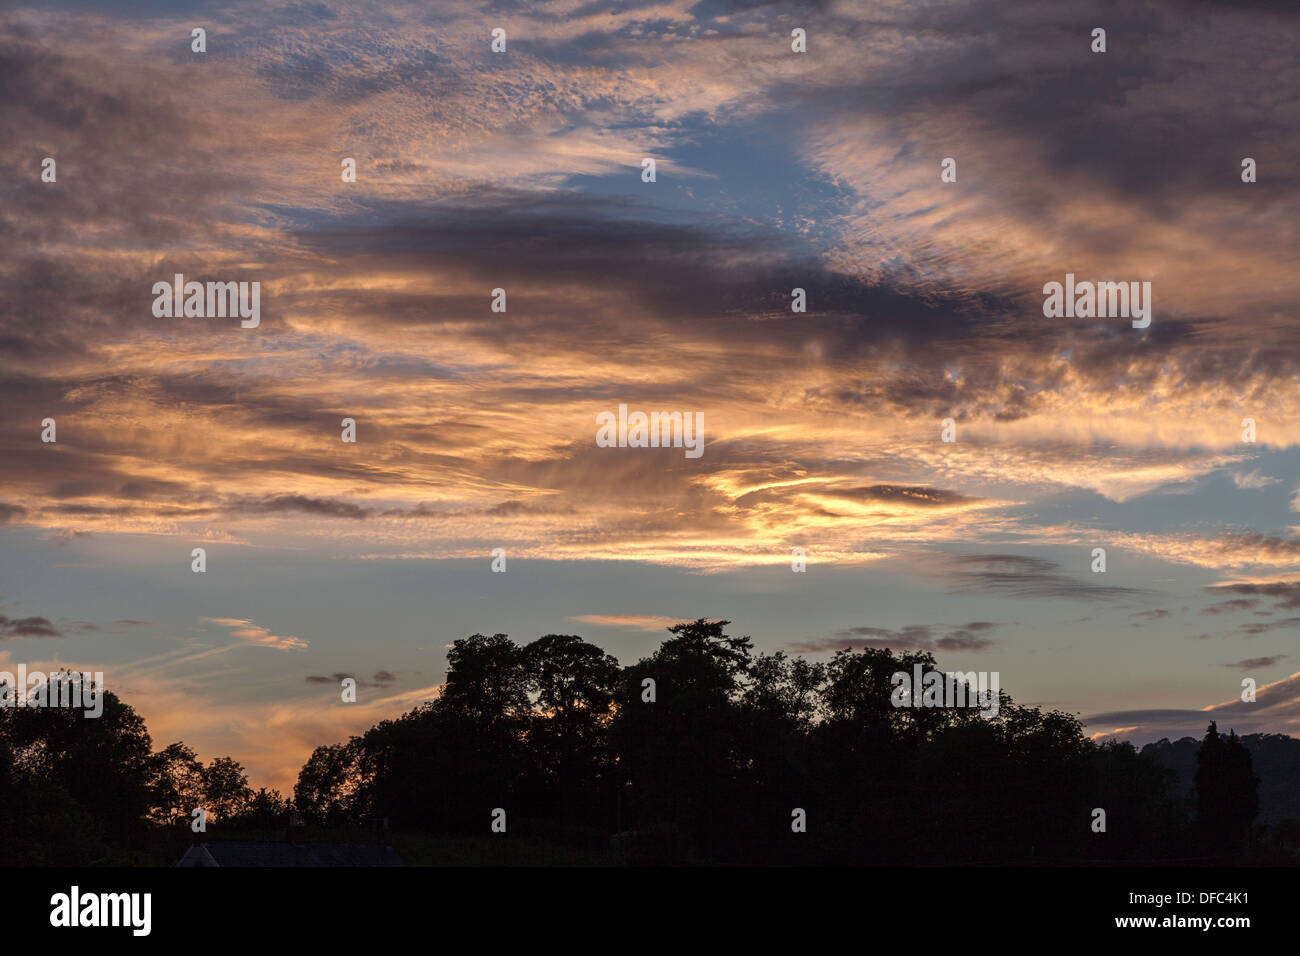 EVENING SKY WITH DRAMATIC CLOUDS UK . Trees silhouetted against sky. - Stock Image